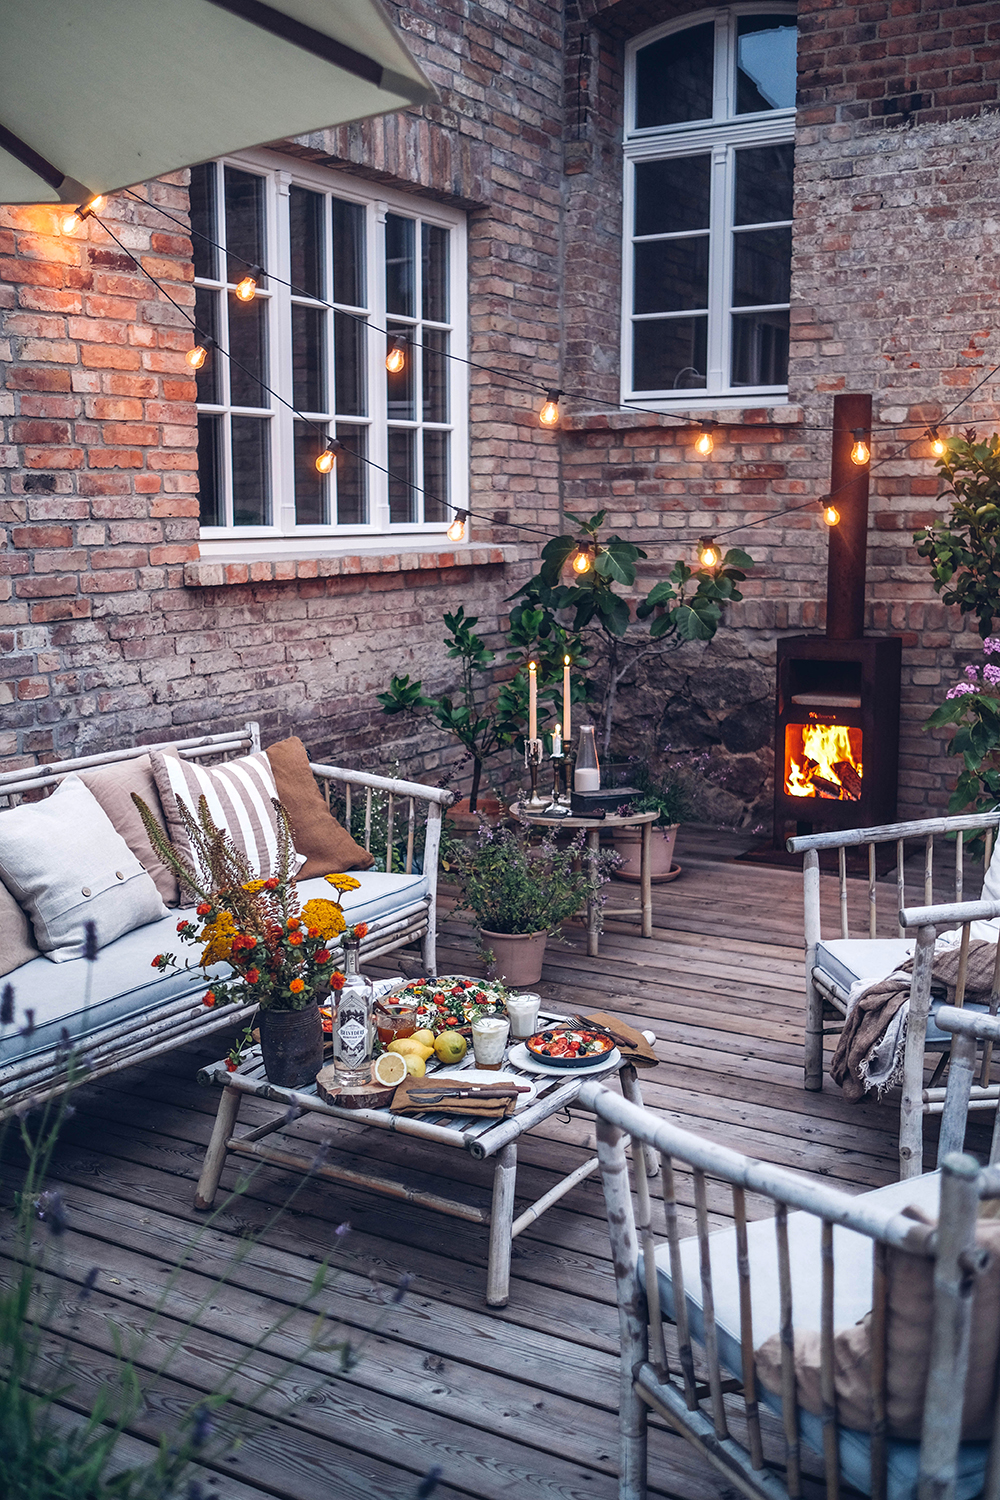 A Summer Evening on the Terrace